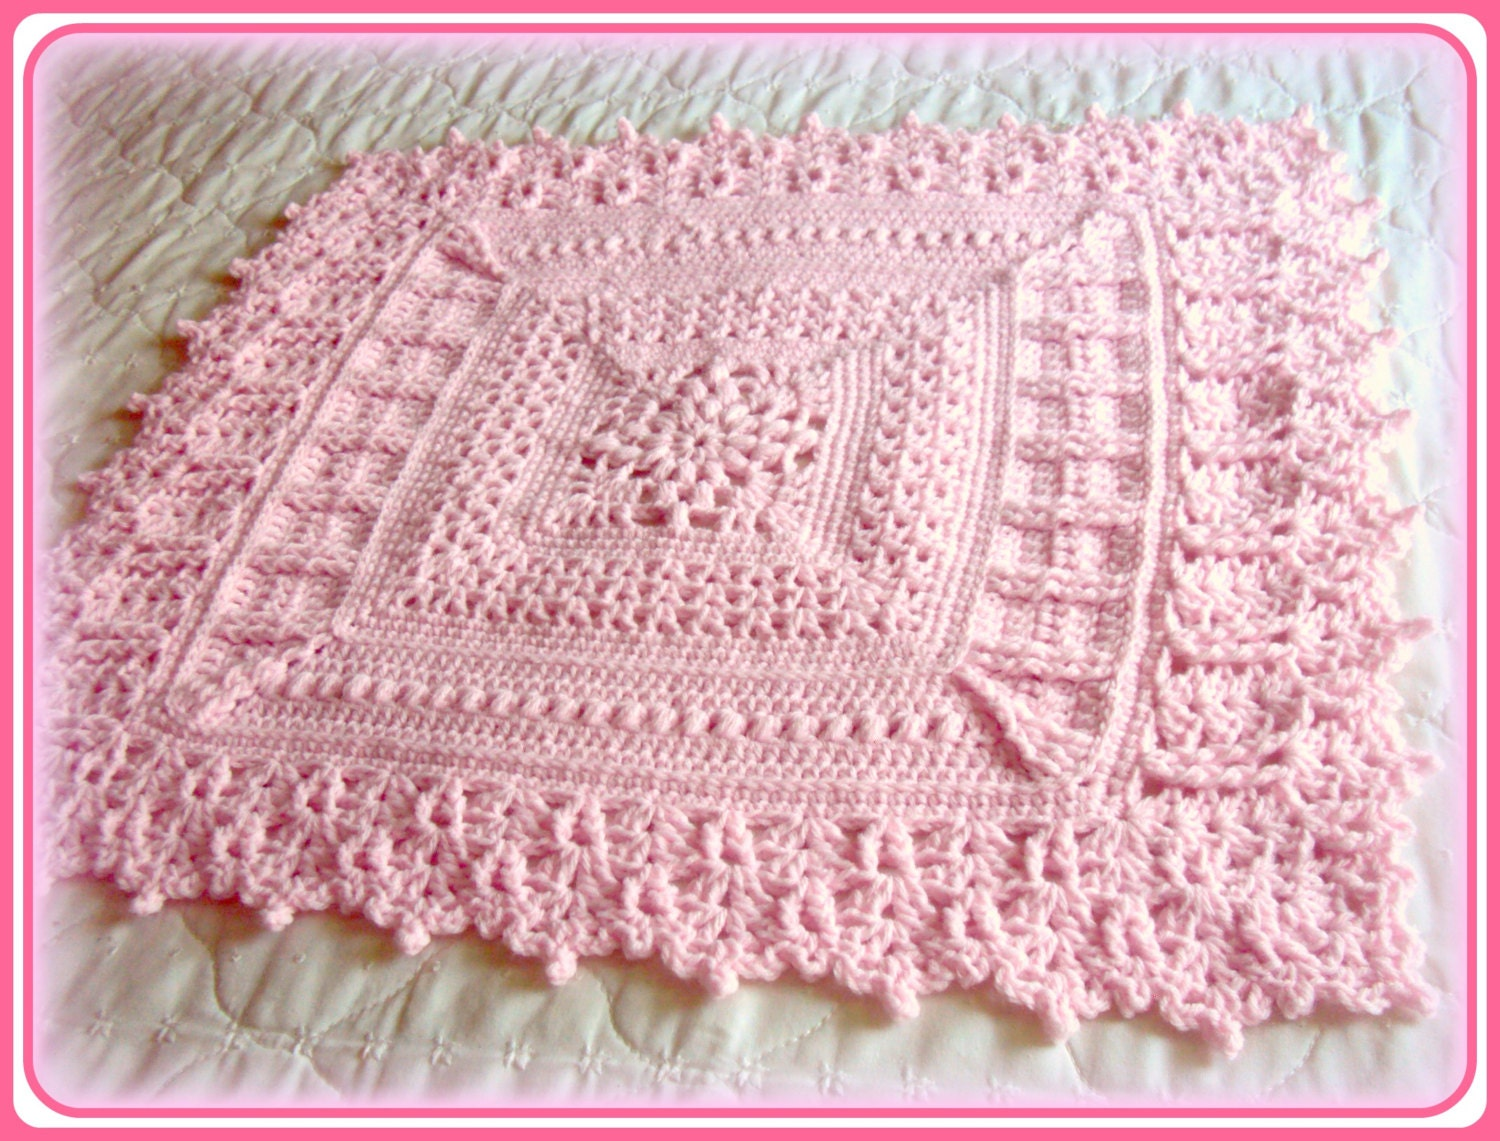 Crochet Patterns For Beginners Baby Blankets : Crochet a scarf ? Crochet a scarf is easy and simple